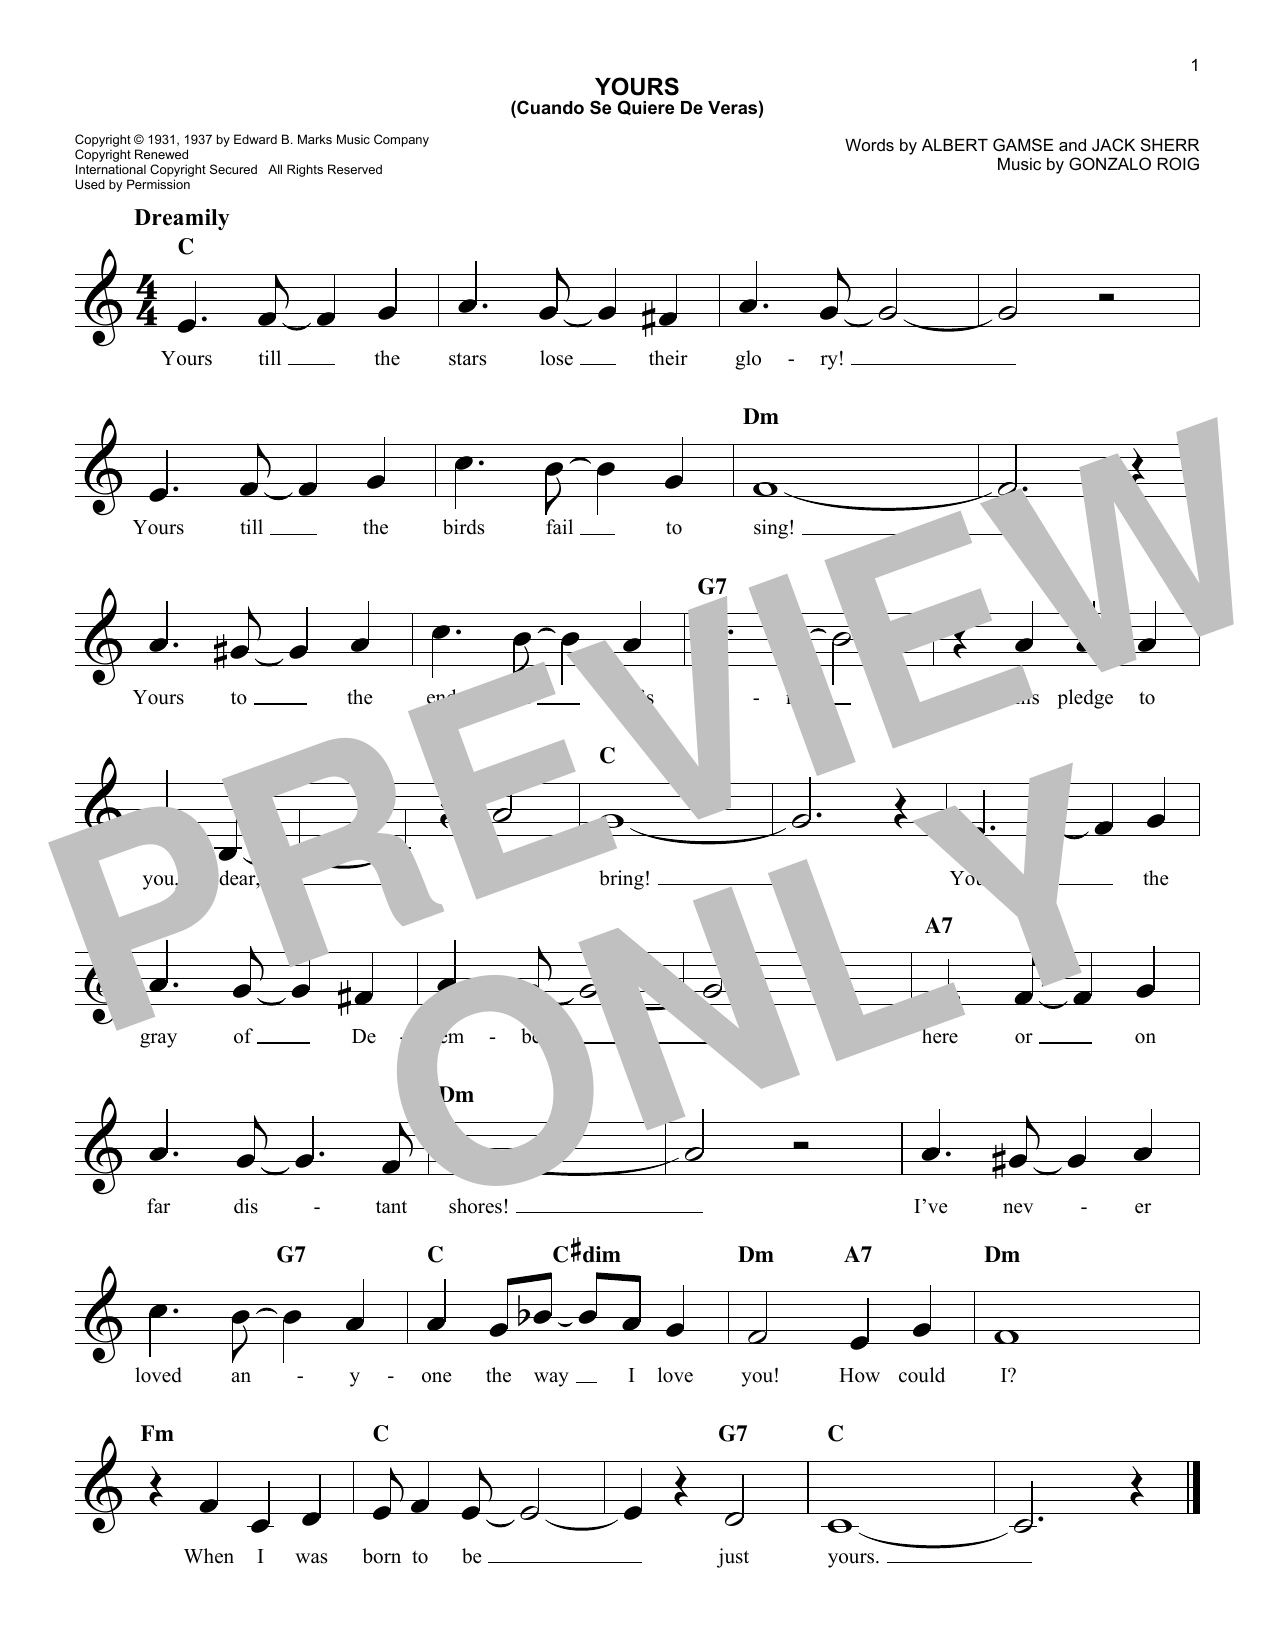 Agustin Rodriguez Yours (Quiereme Mucho) sheet music notes and chords. Download Printable PDF.